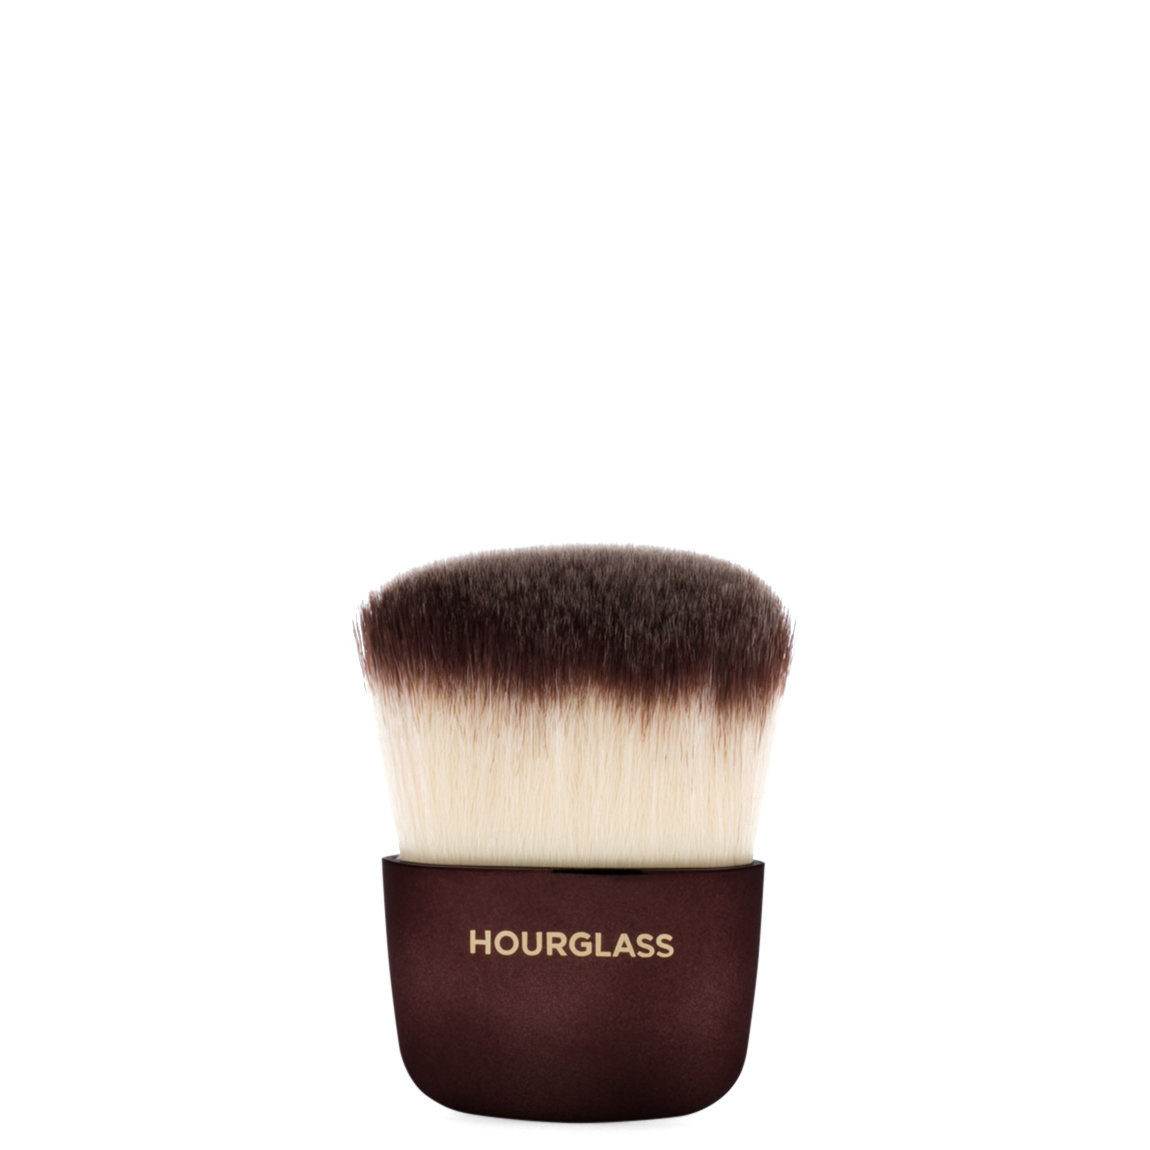 Hourglass Ambient Powder Brush product smear.